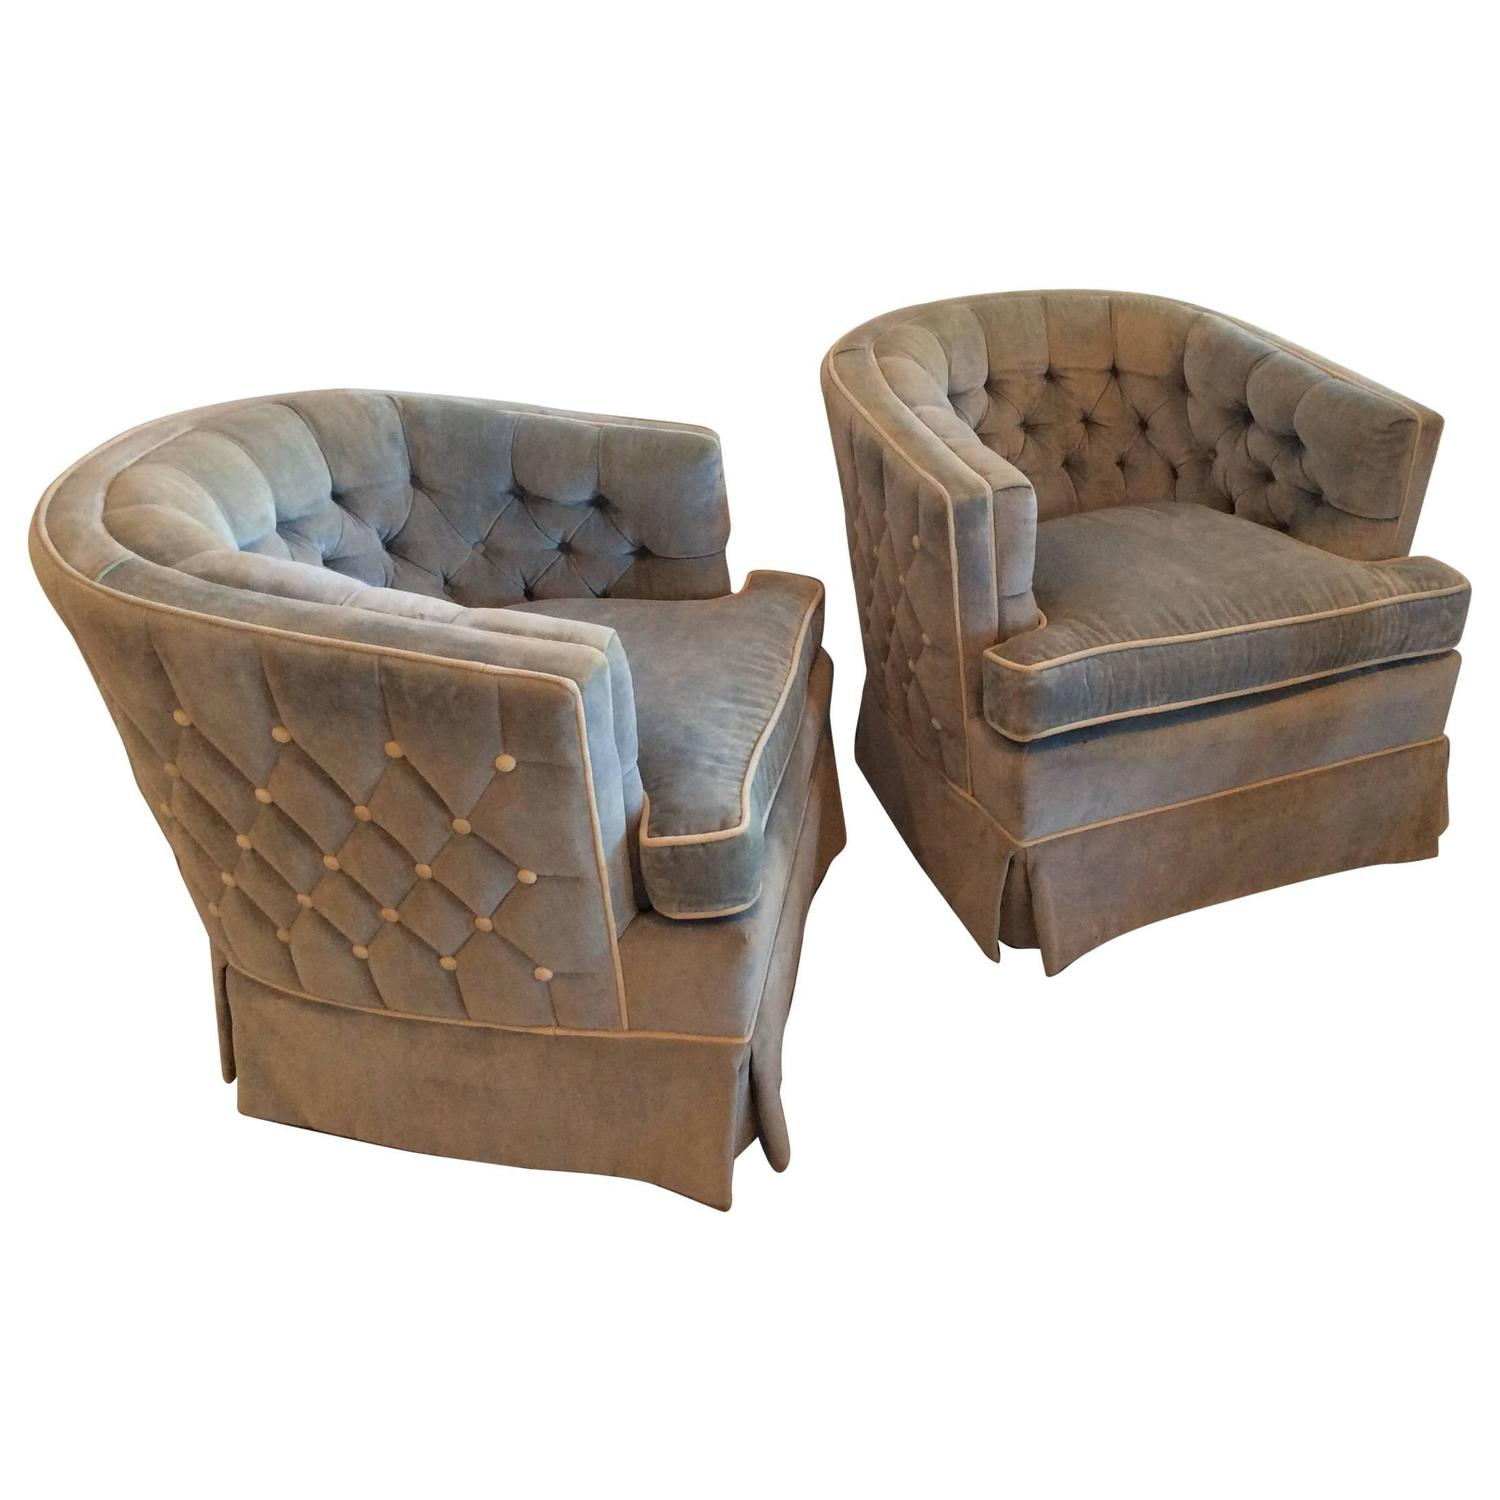 id swivel for pair z of chair hollywood vintage tufted barrel f arm tub regency button seating chairs furniture sale at